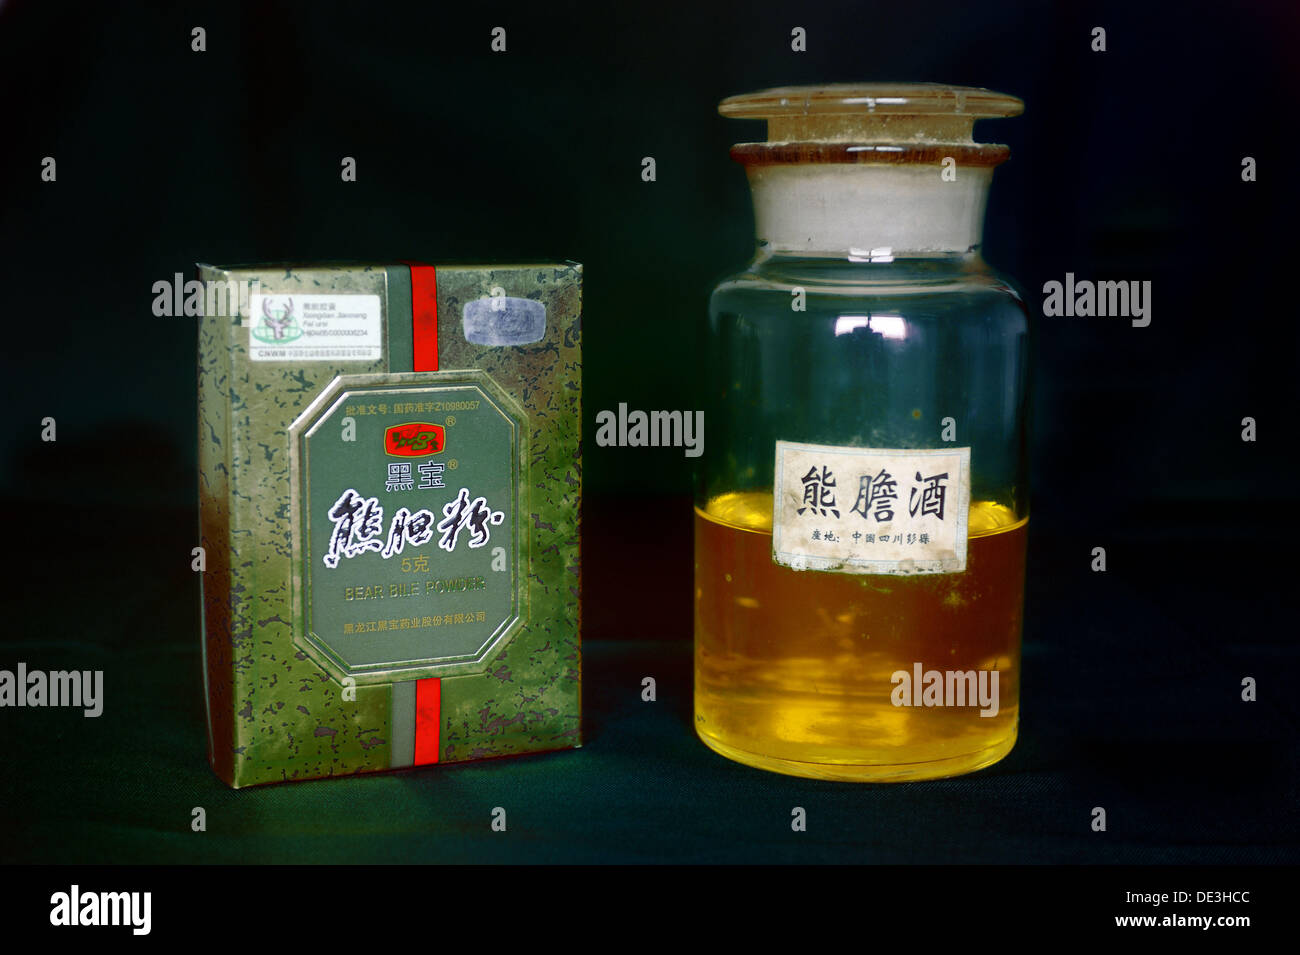 Bile product from Asiatic black bear (Ursus thibetanus) used in traditional Chinese medicine - Stock Image